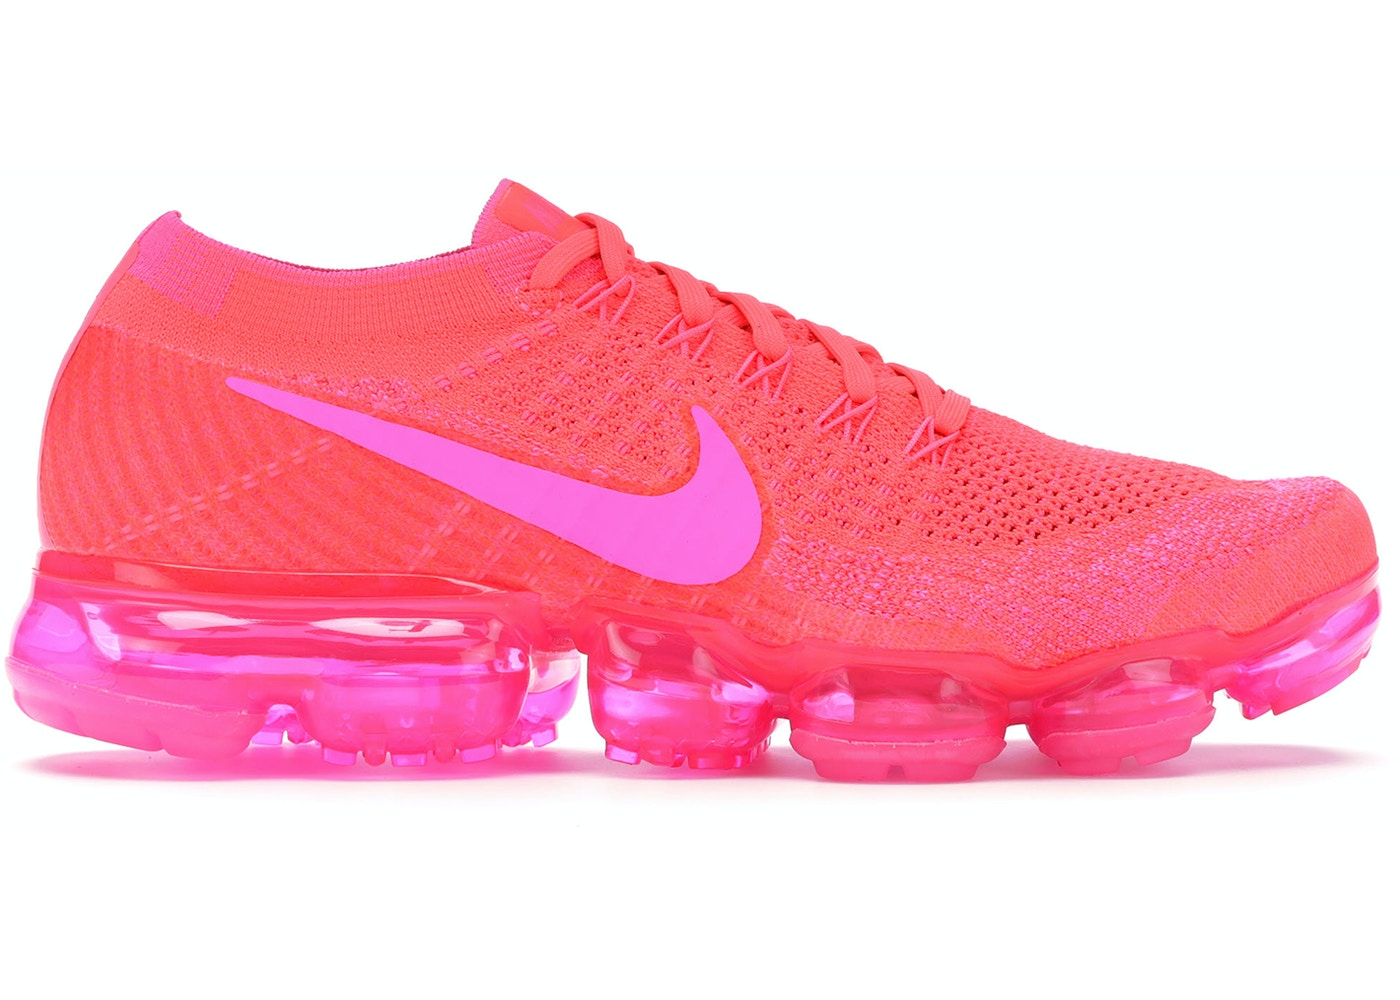 reputable site 52e3d 7d7dd Air VaporMax Hyper Punch (W)